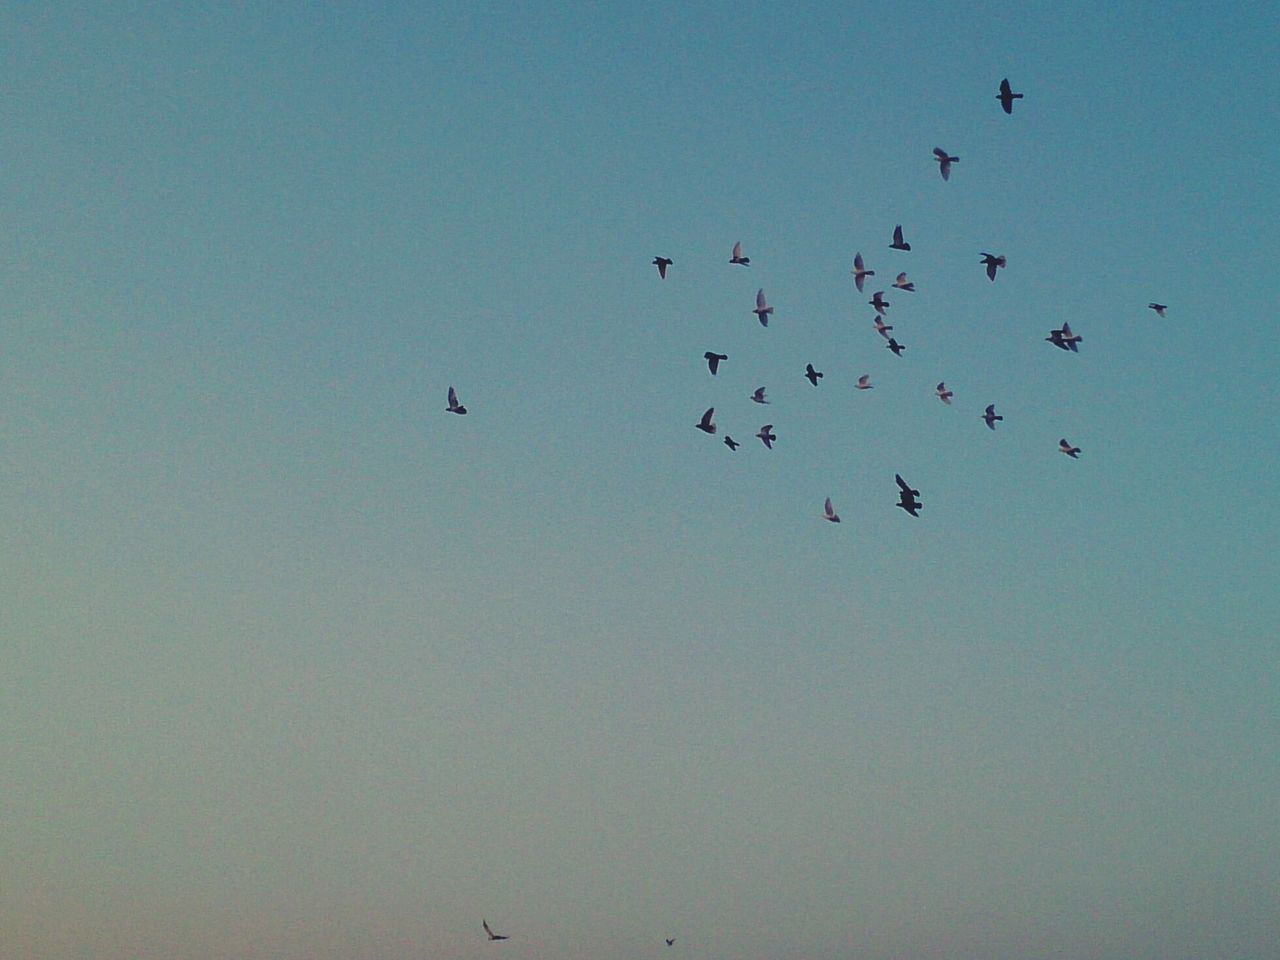 flying, bird, large group of animals, flock of birds, low angle view, animal themes, animals in the wild, copy space, clear sky, migrating, nature, mid-air, togetherness, outdoors, beauty in nature, animal wildlife, no people, day, sky